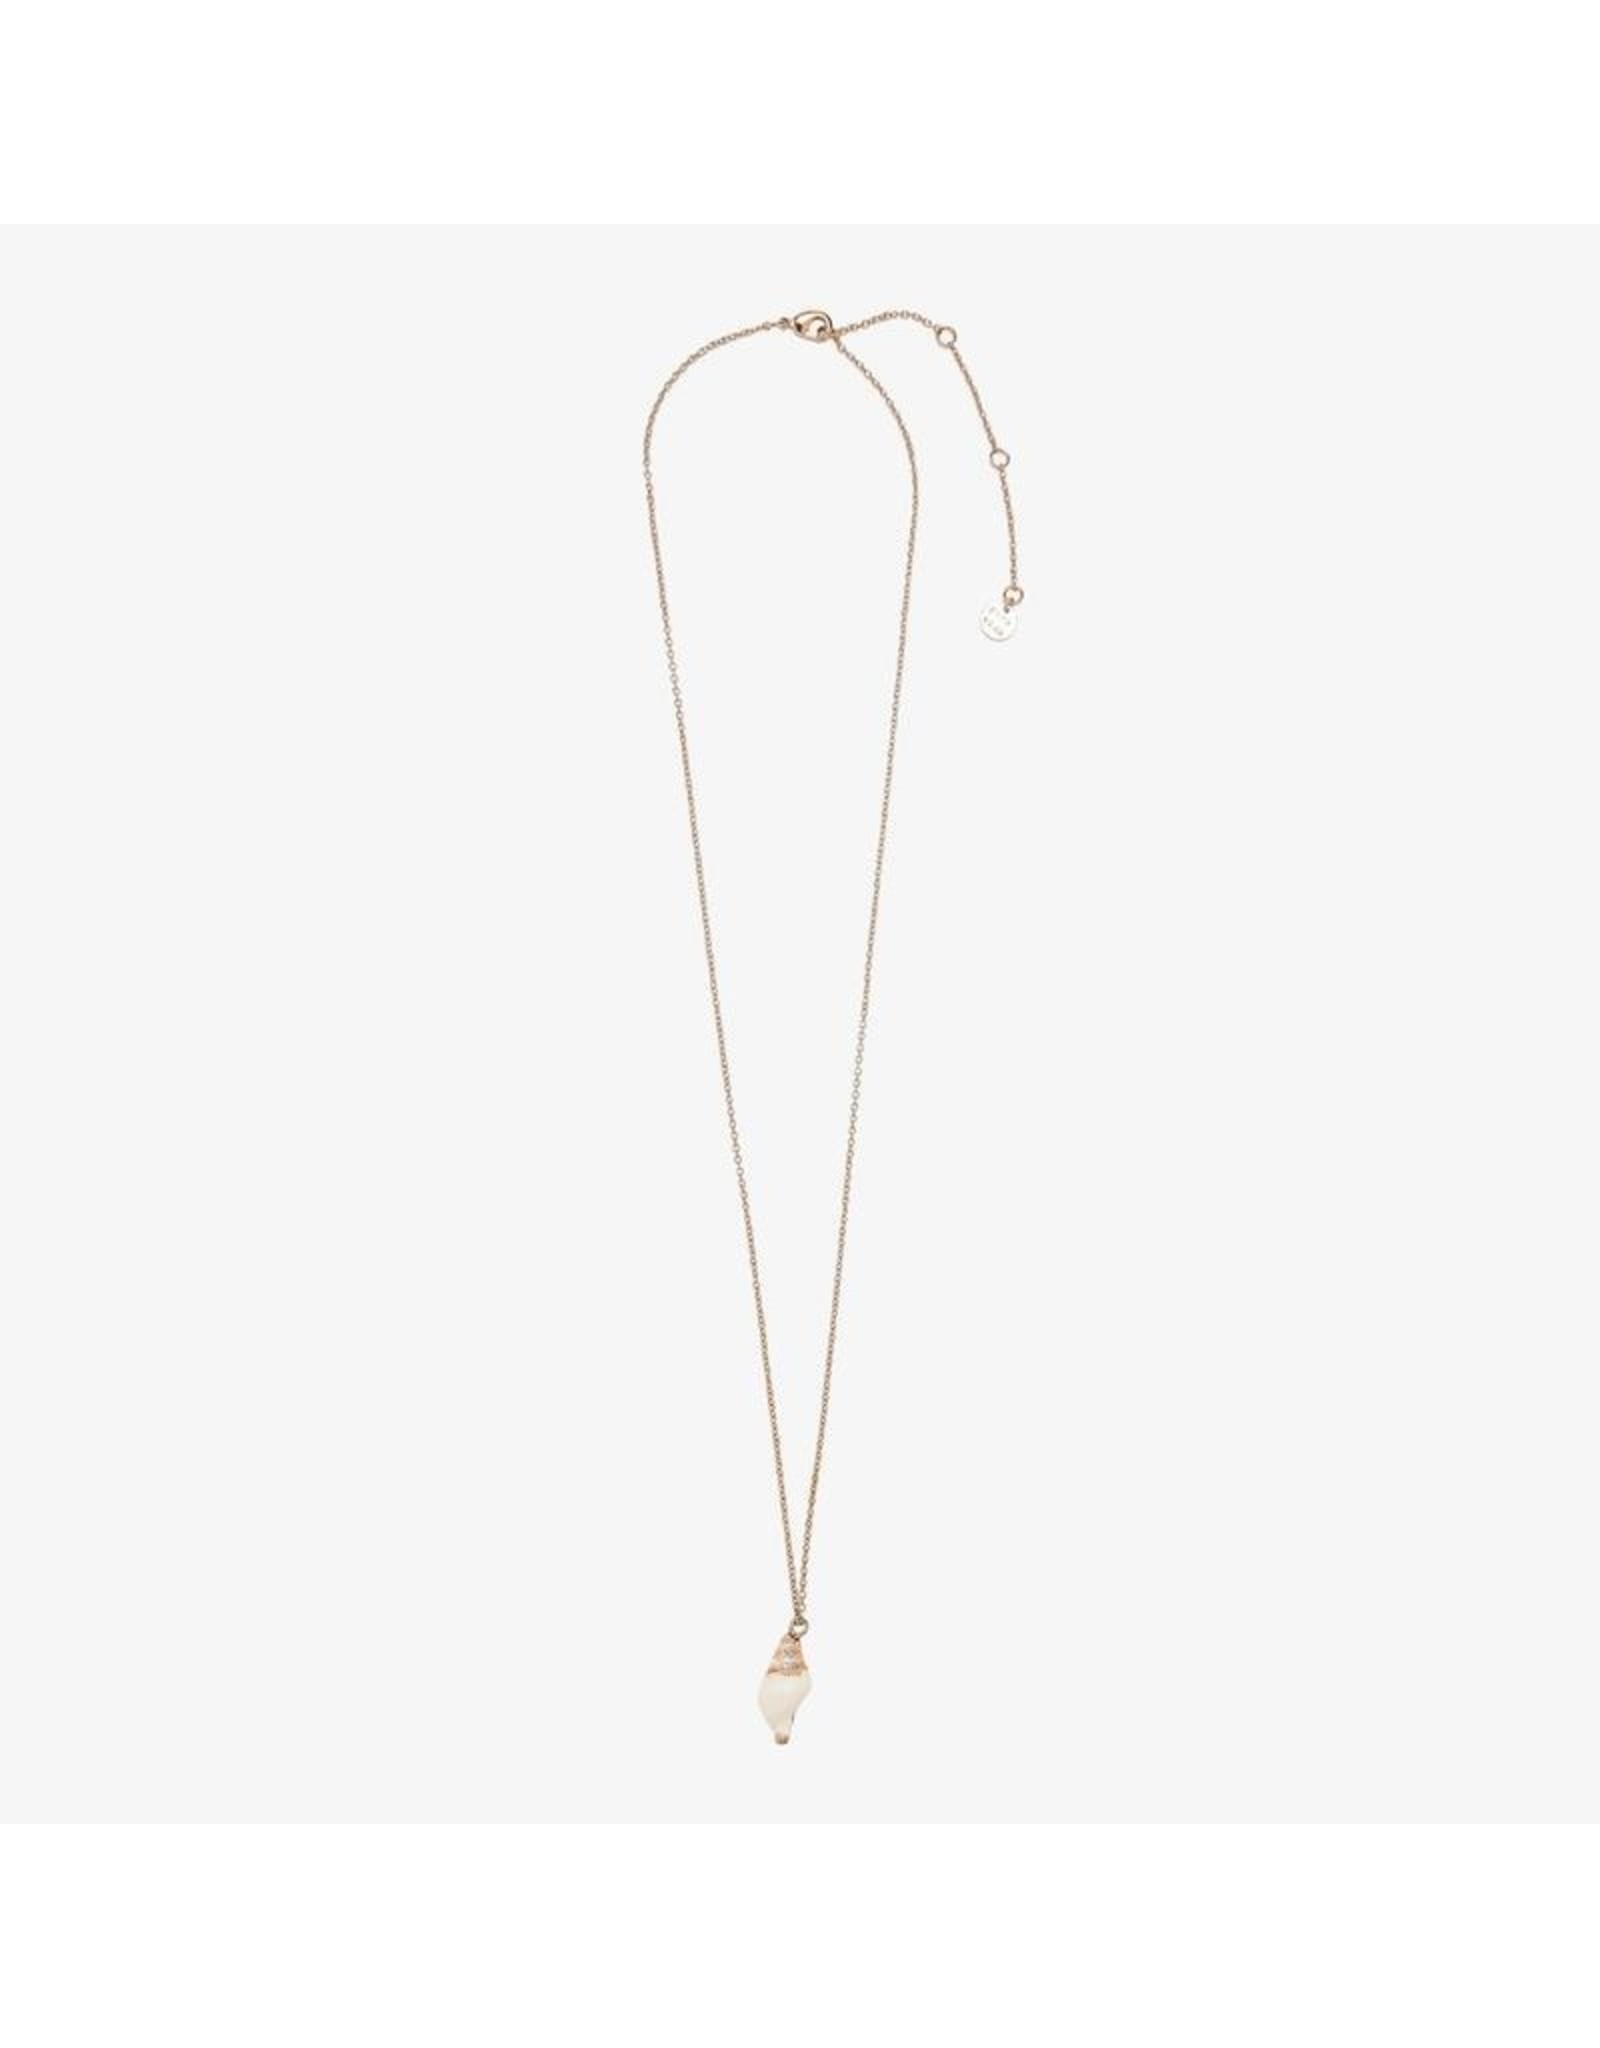 Pura Vida Electroplated Conch Necklace, Rose Gold